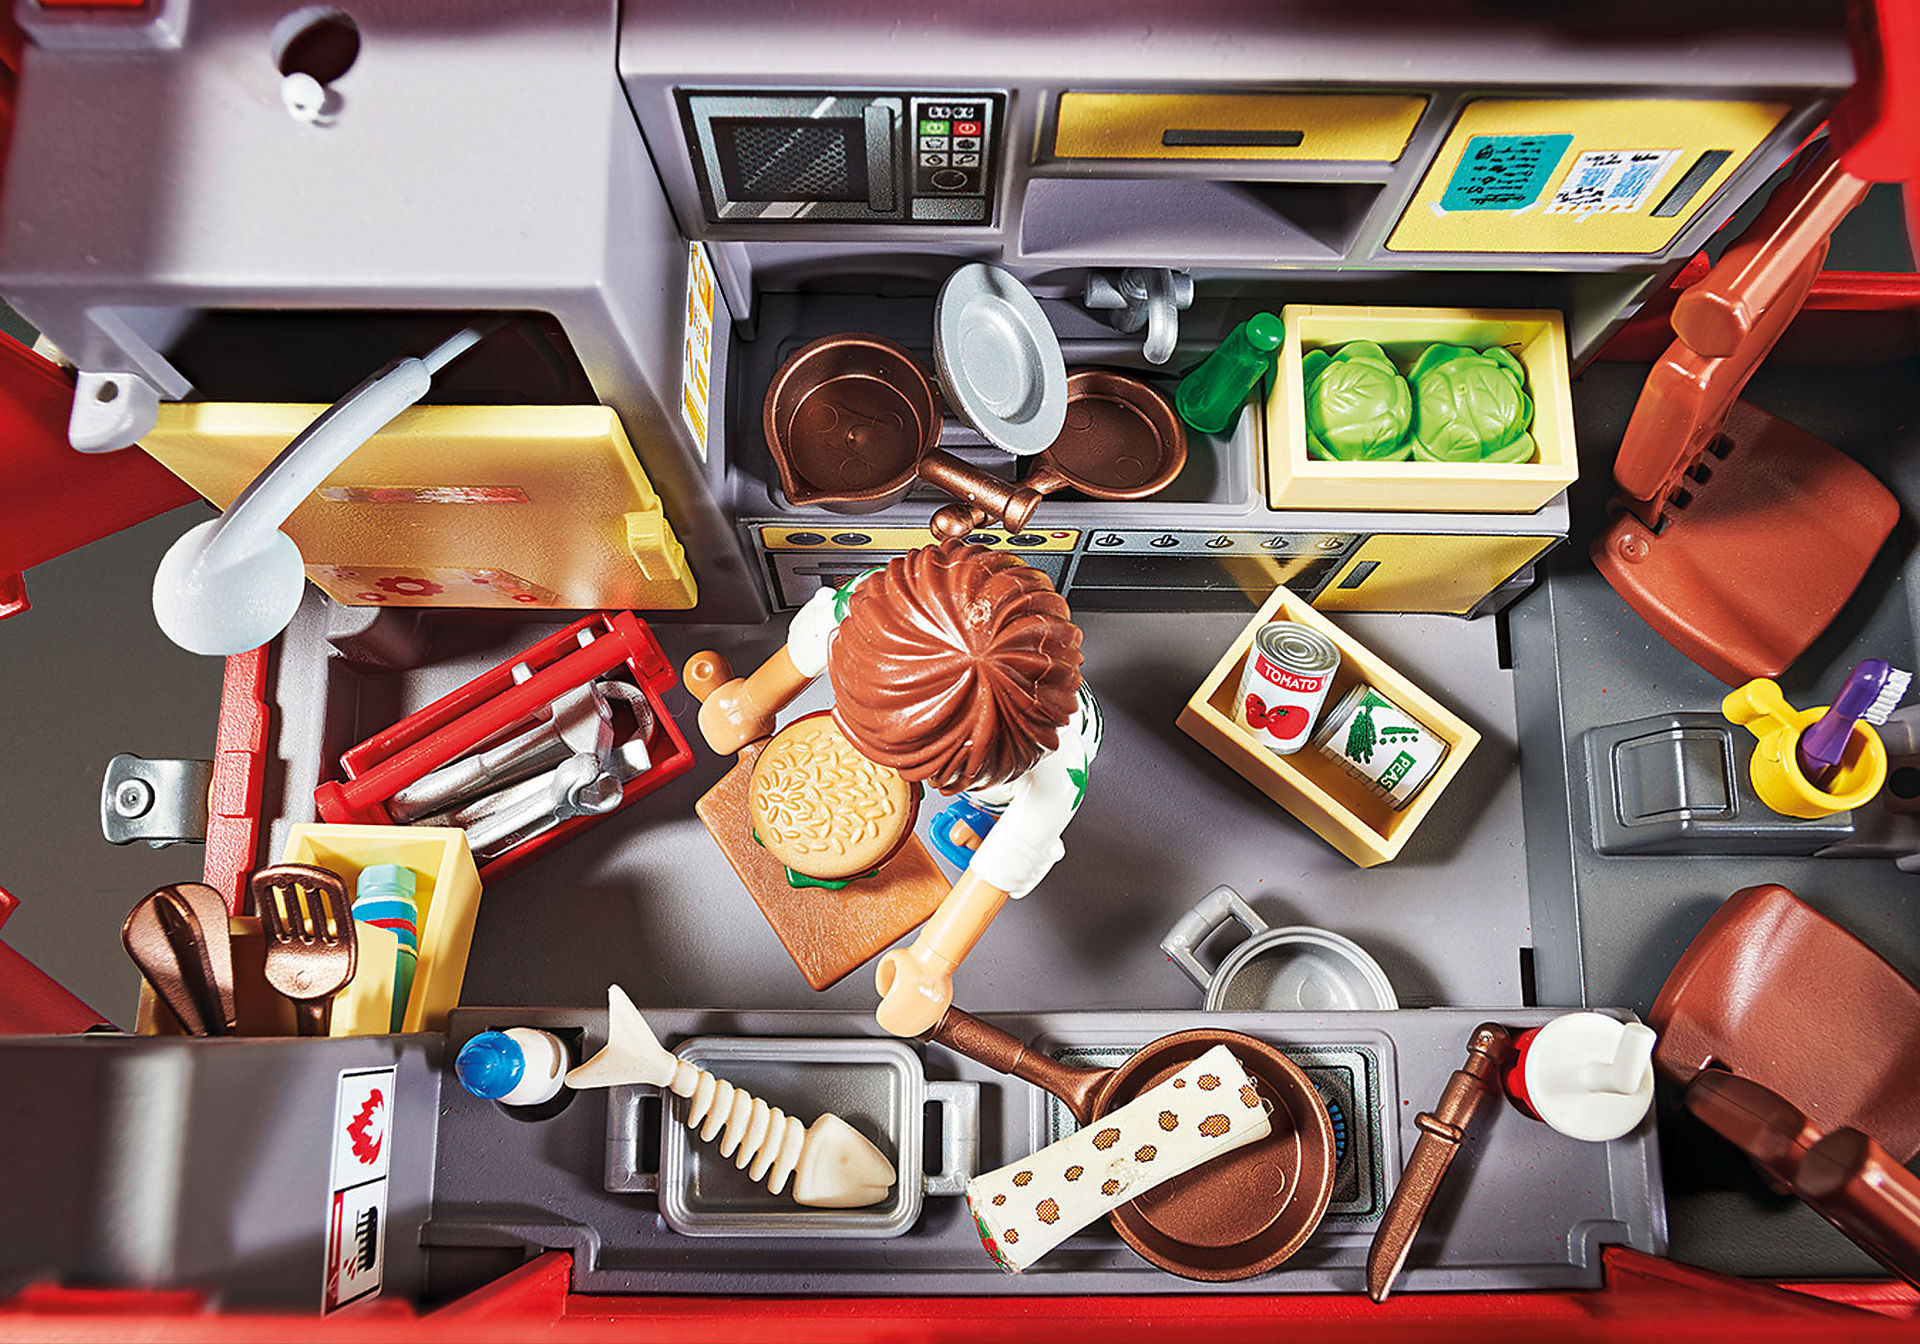 http://media.playmobil.com/i/playmobil/70075_product_extra1/PLAYMOBIL: THE MOVIE Food Truck di Del